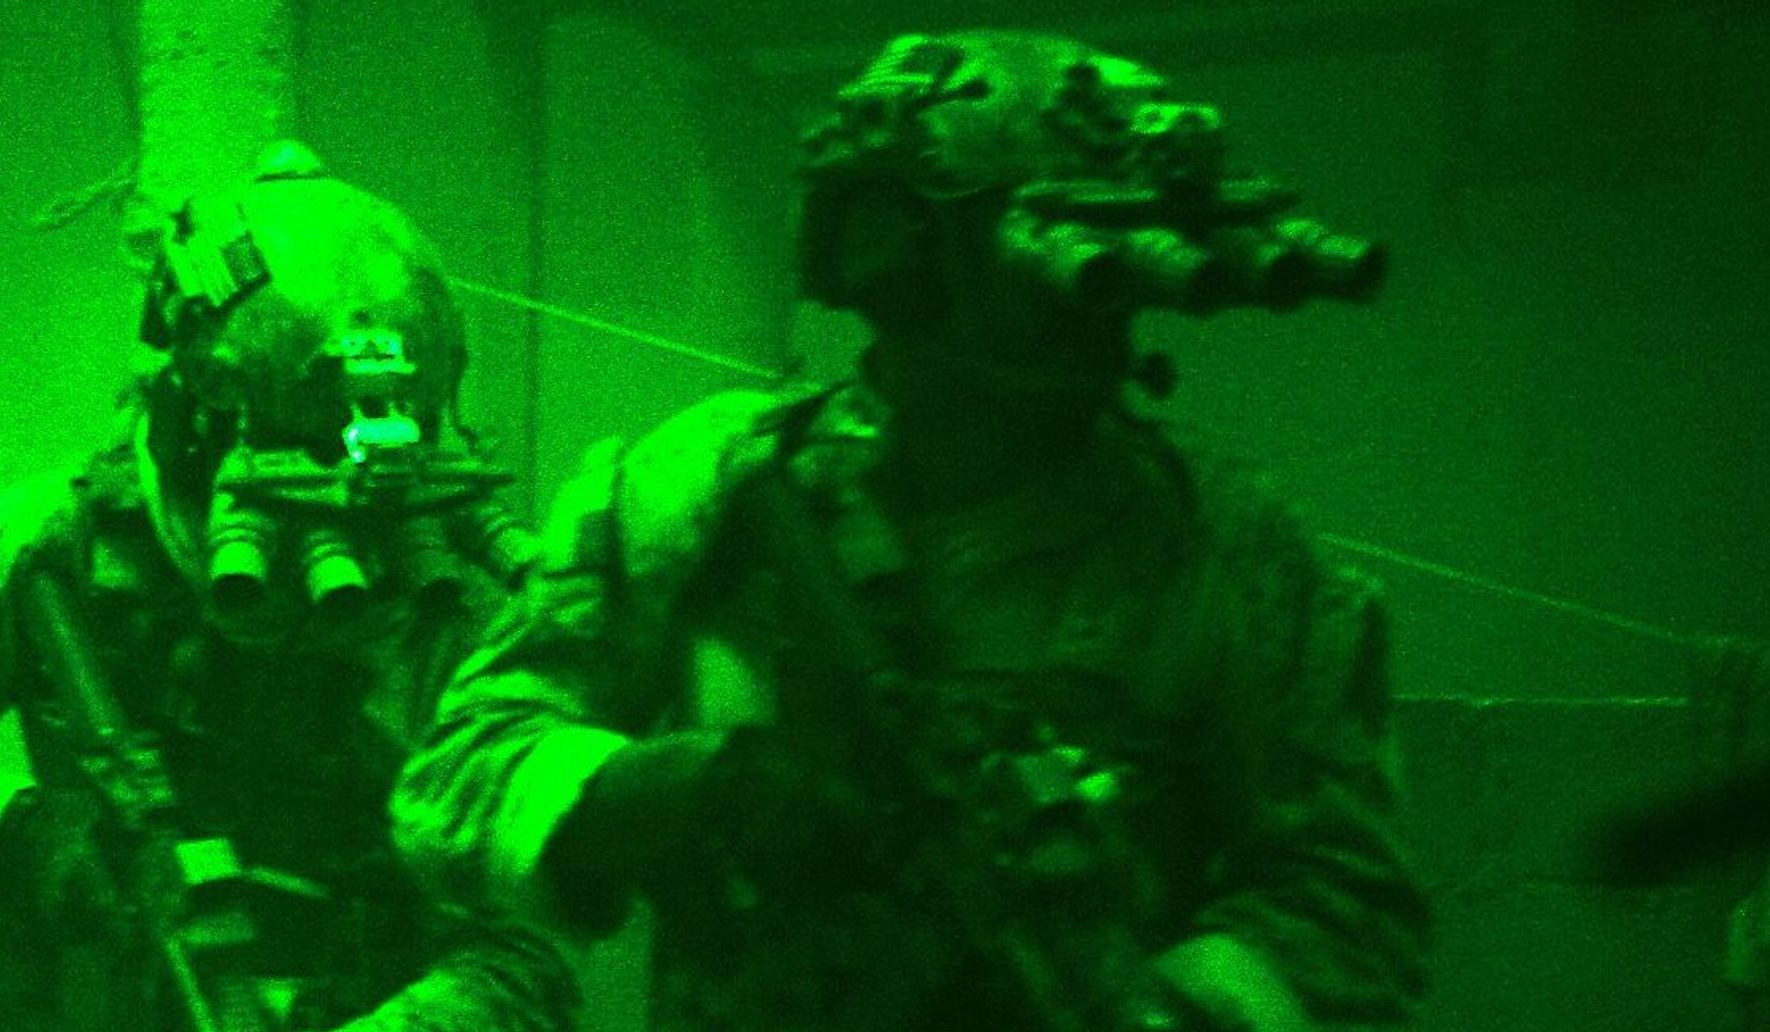 KUHNER: The betrayal of the Navy's SEAL Team 6 - Washington